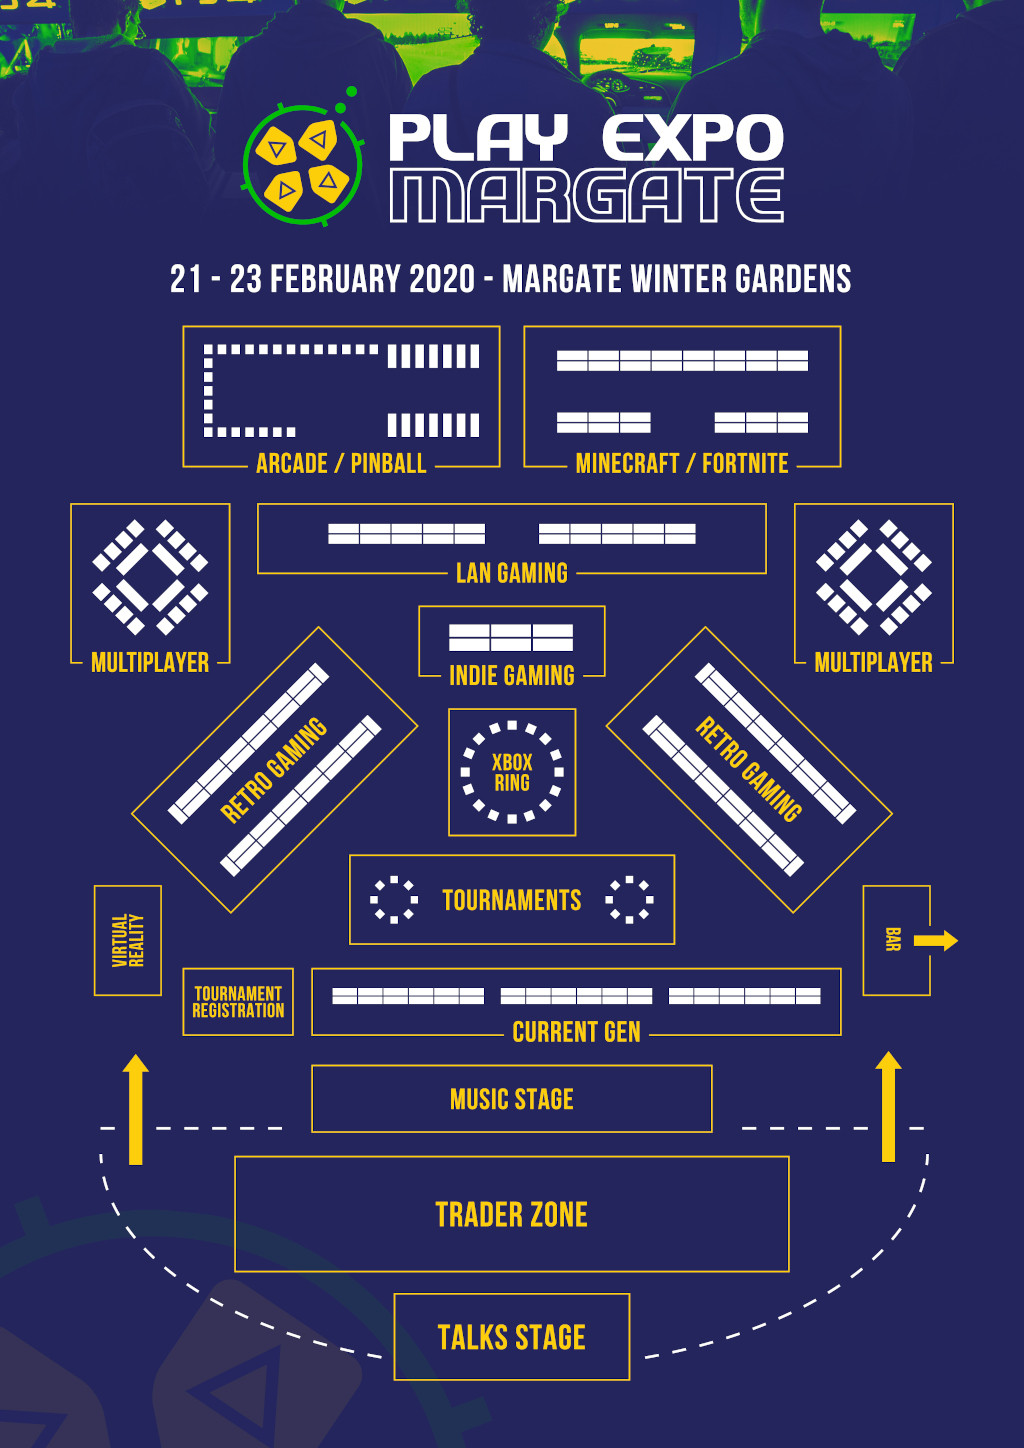 RE PlayExpo Margate2020 Floorplan10242